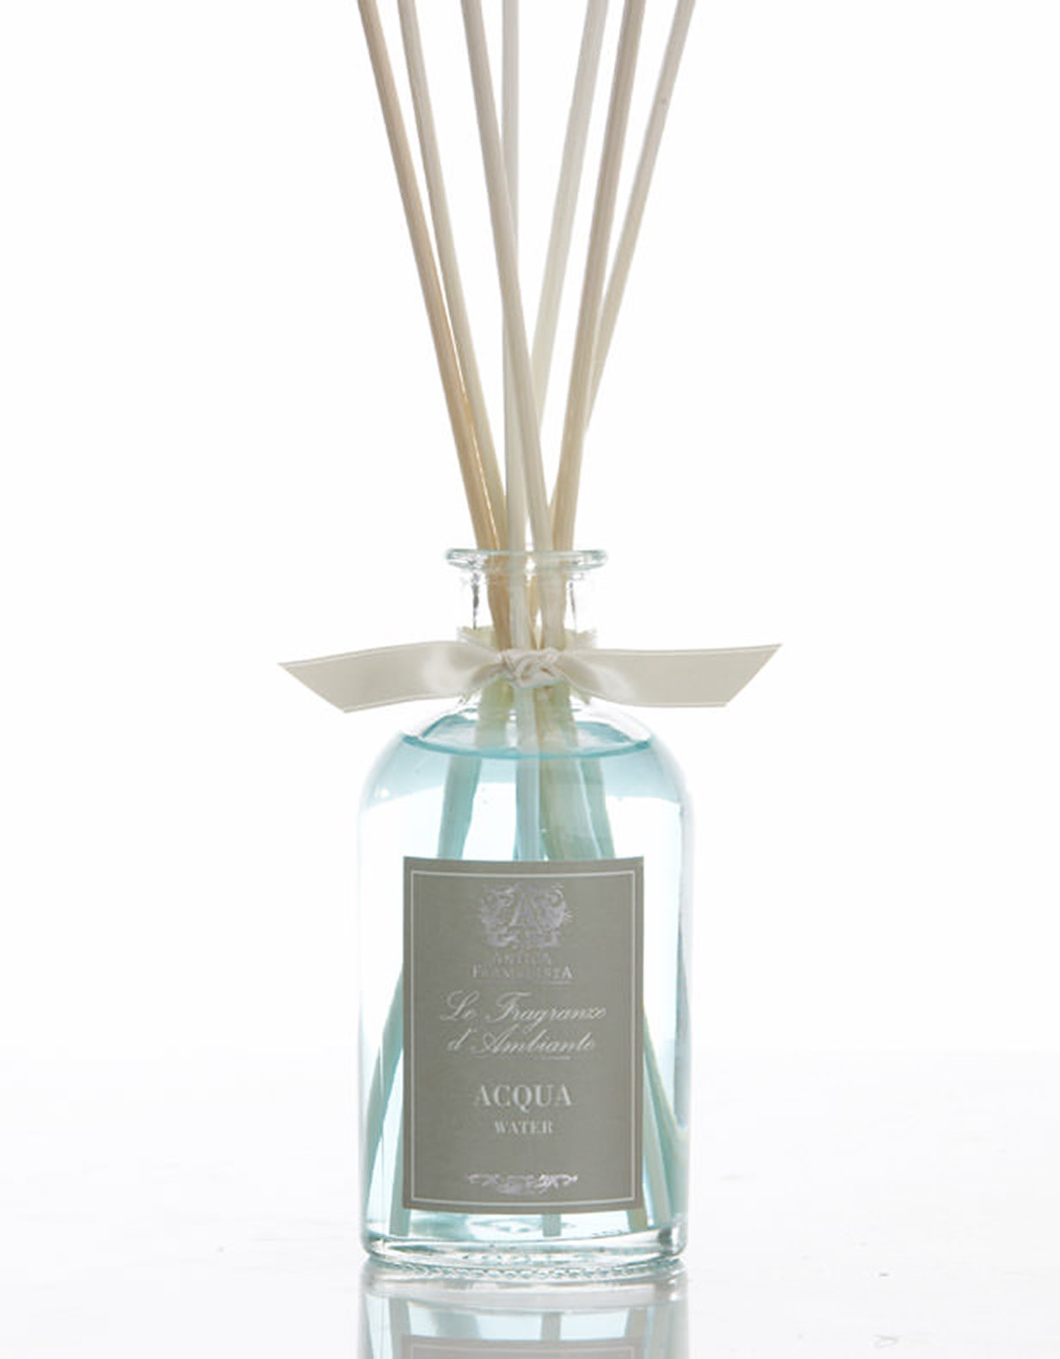 Acqua 100ml Diffuser